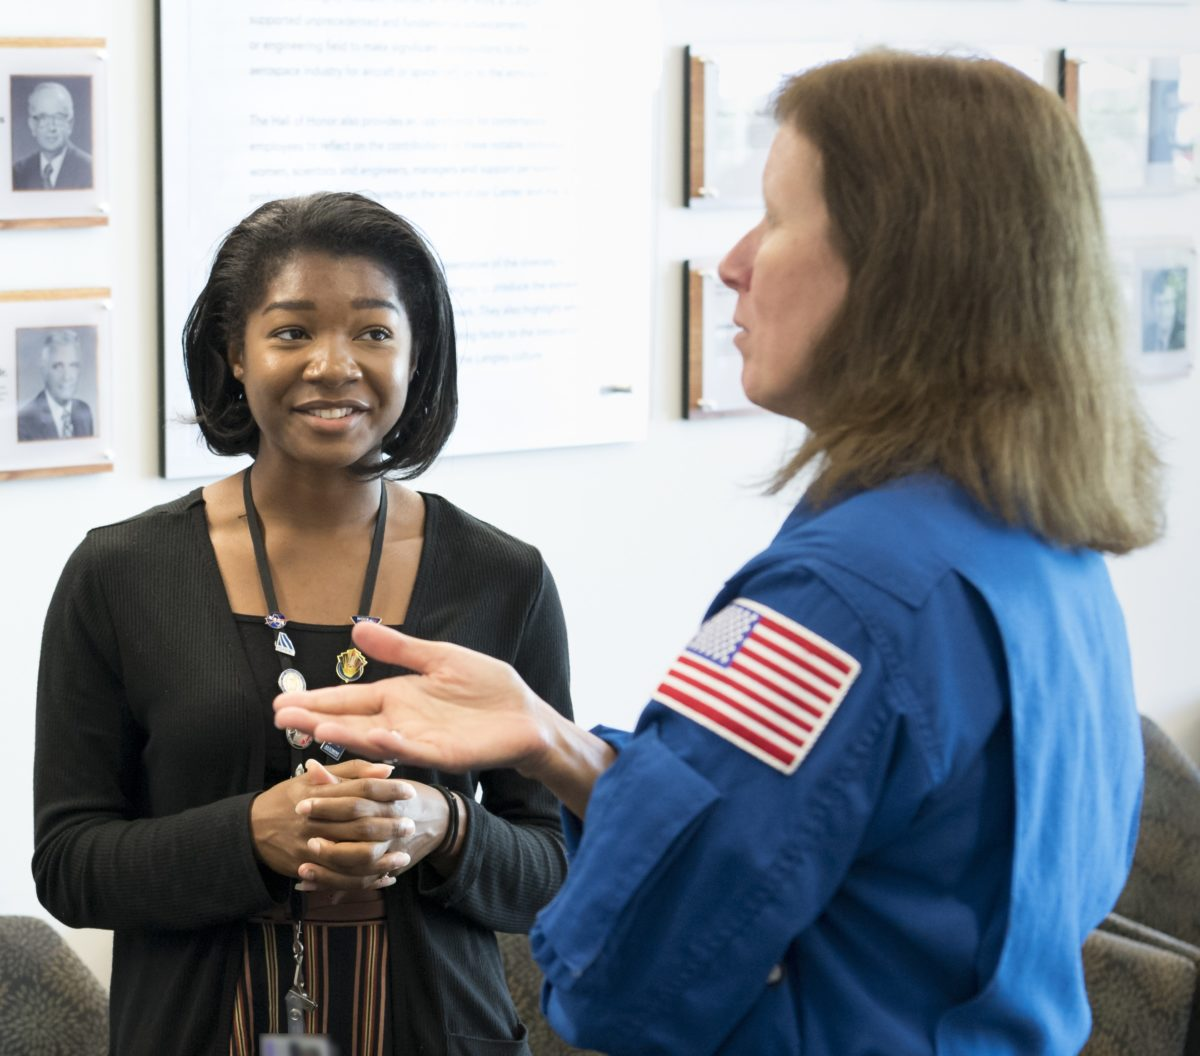 Jasmine Hopkins: The Craft of Communication at NASA's Langley Research Center